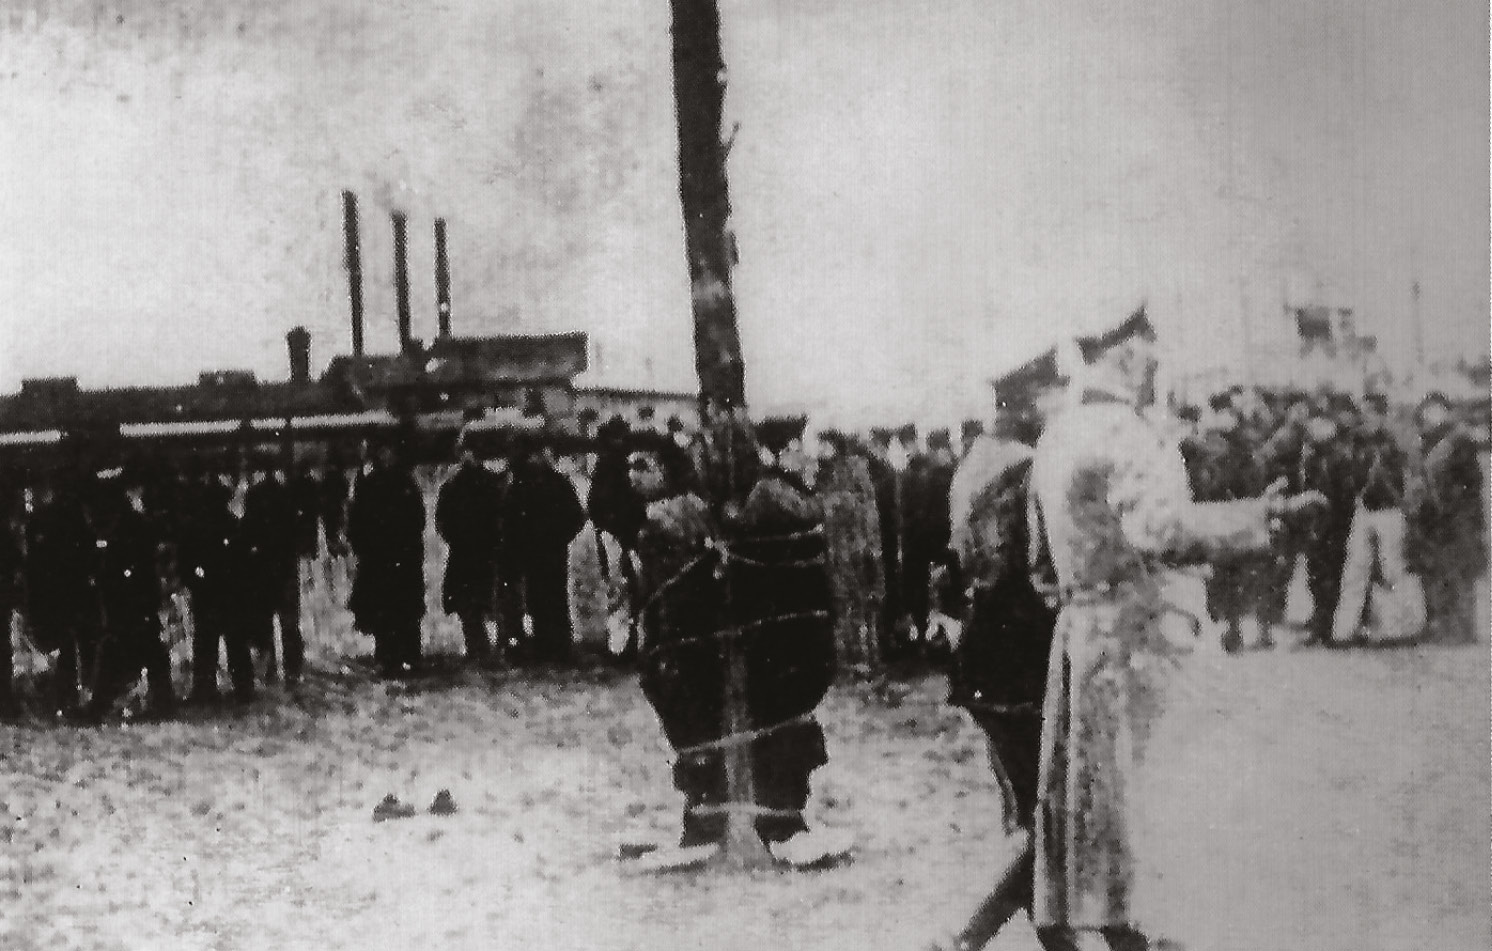 RIGHT This grainy image shows British soldiers tied to a post in a German POW camp, one of many violations of the Hague Conventions.